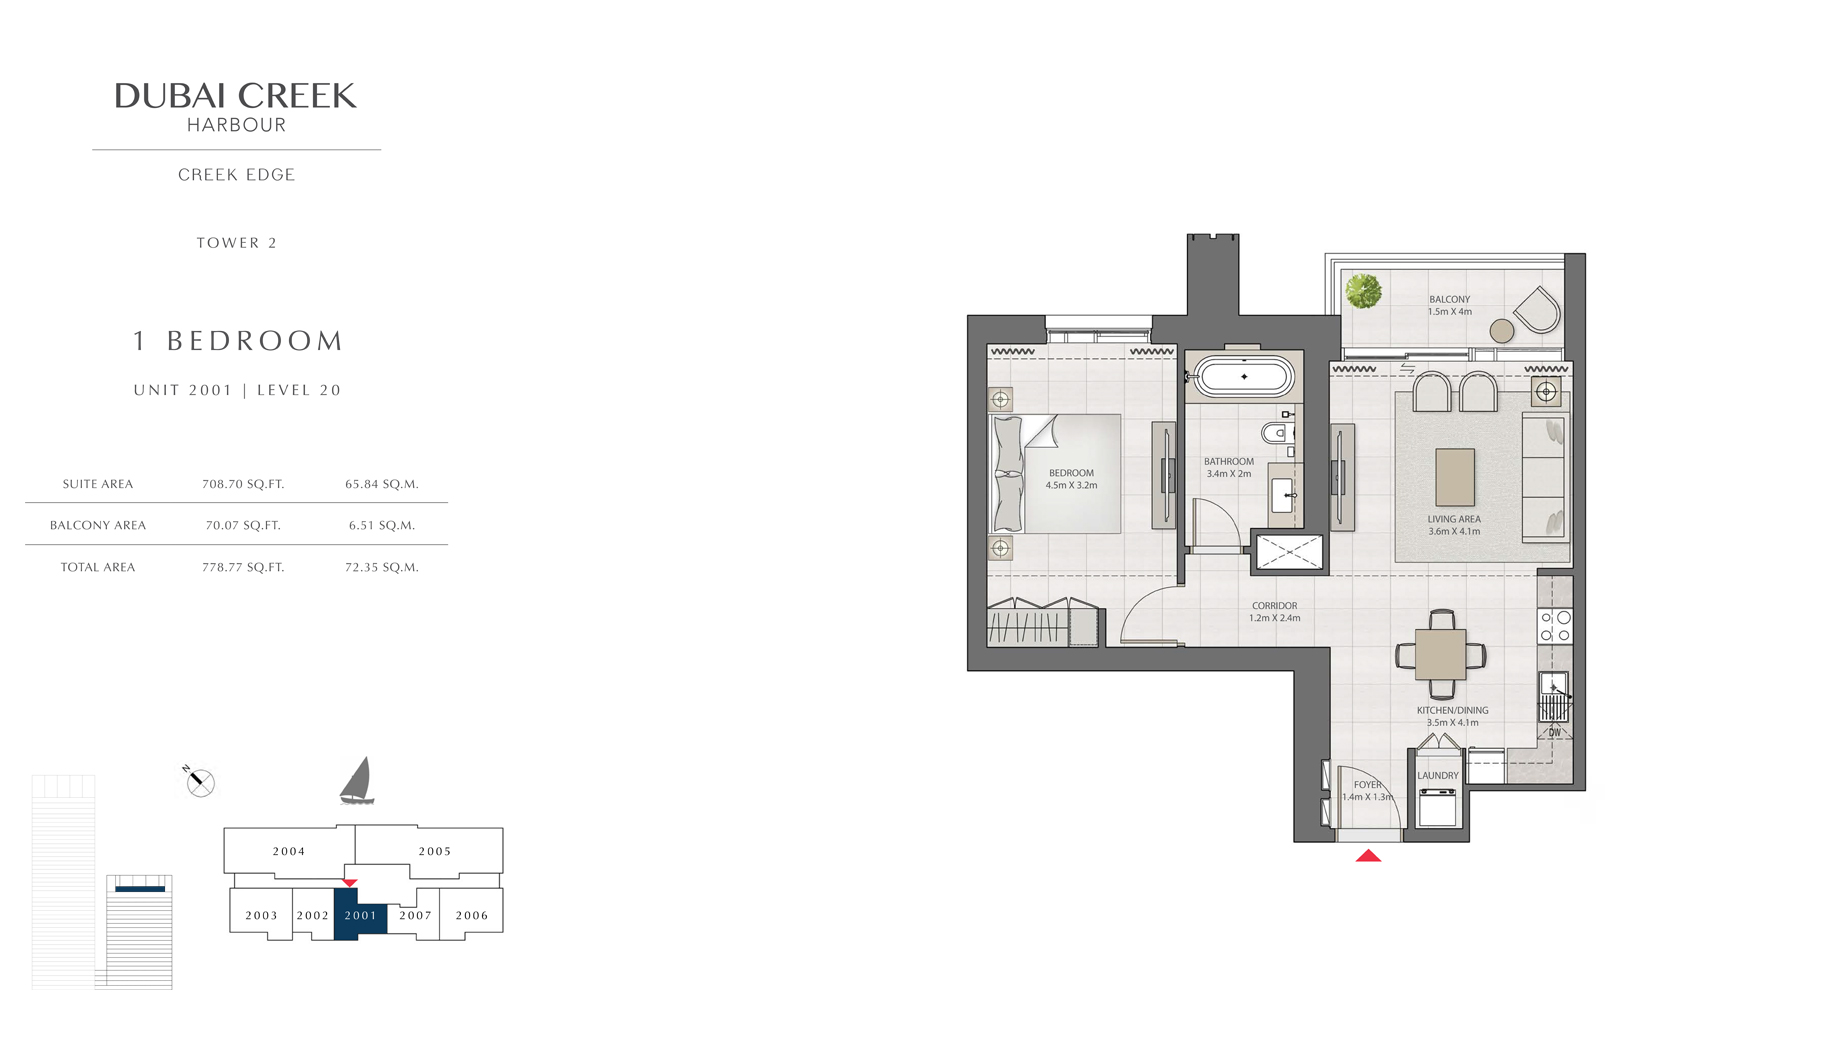 1 Bedroom Tower 2 Unit 2001 Level 20 Size 778 sq.ft